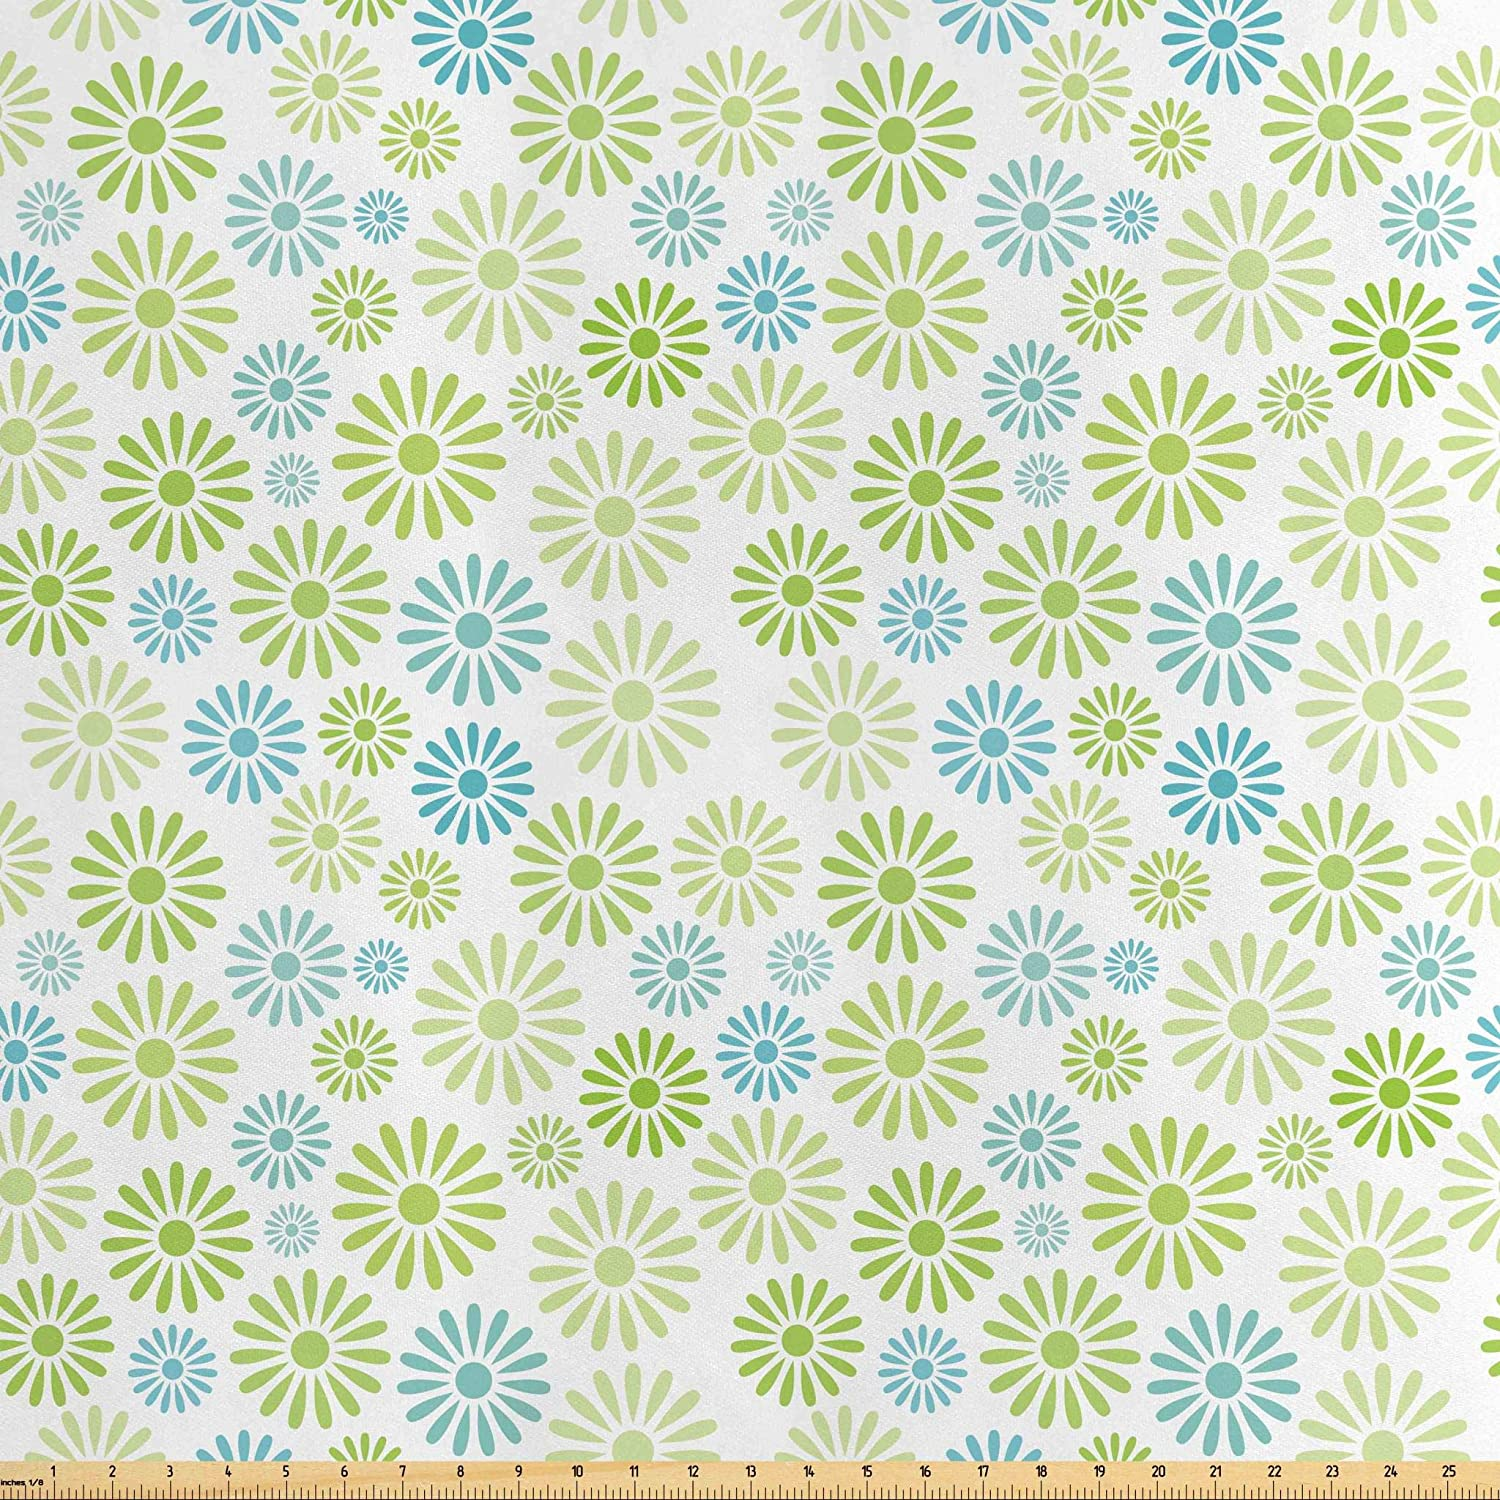 Lunarable Flower Fabric by The Yard, Various Colorful Flowers Pattern Cartoon Children Nursery Kindergarten Artwork, Decorative Satin Fabric for Home Textiles and Crafts, 3 Yards, Green Blue White